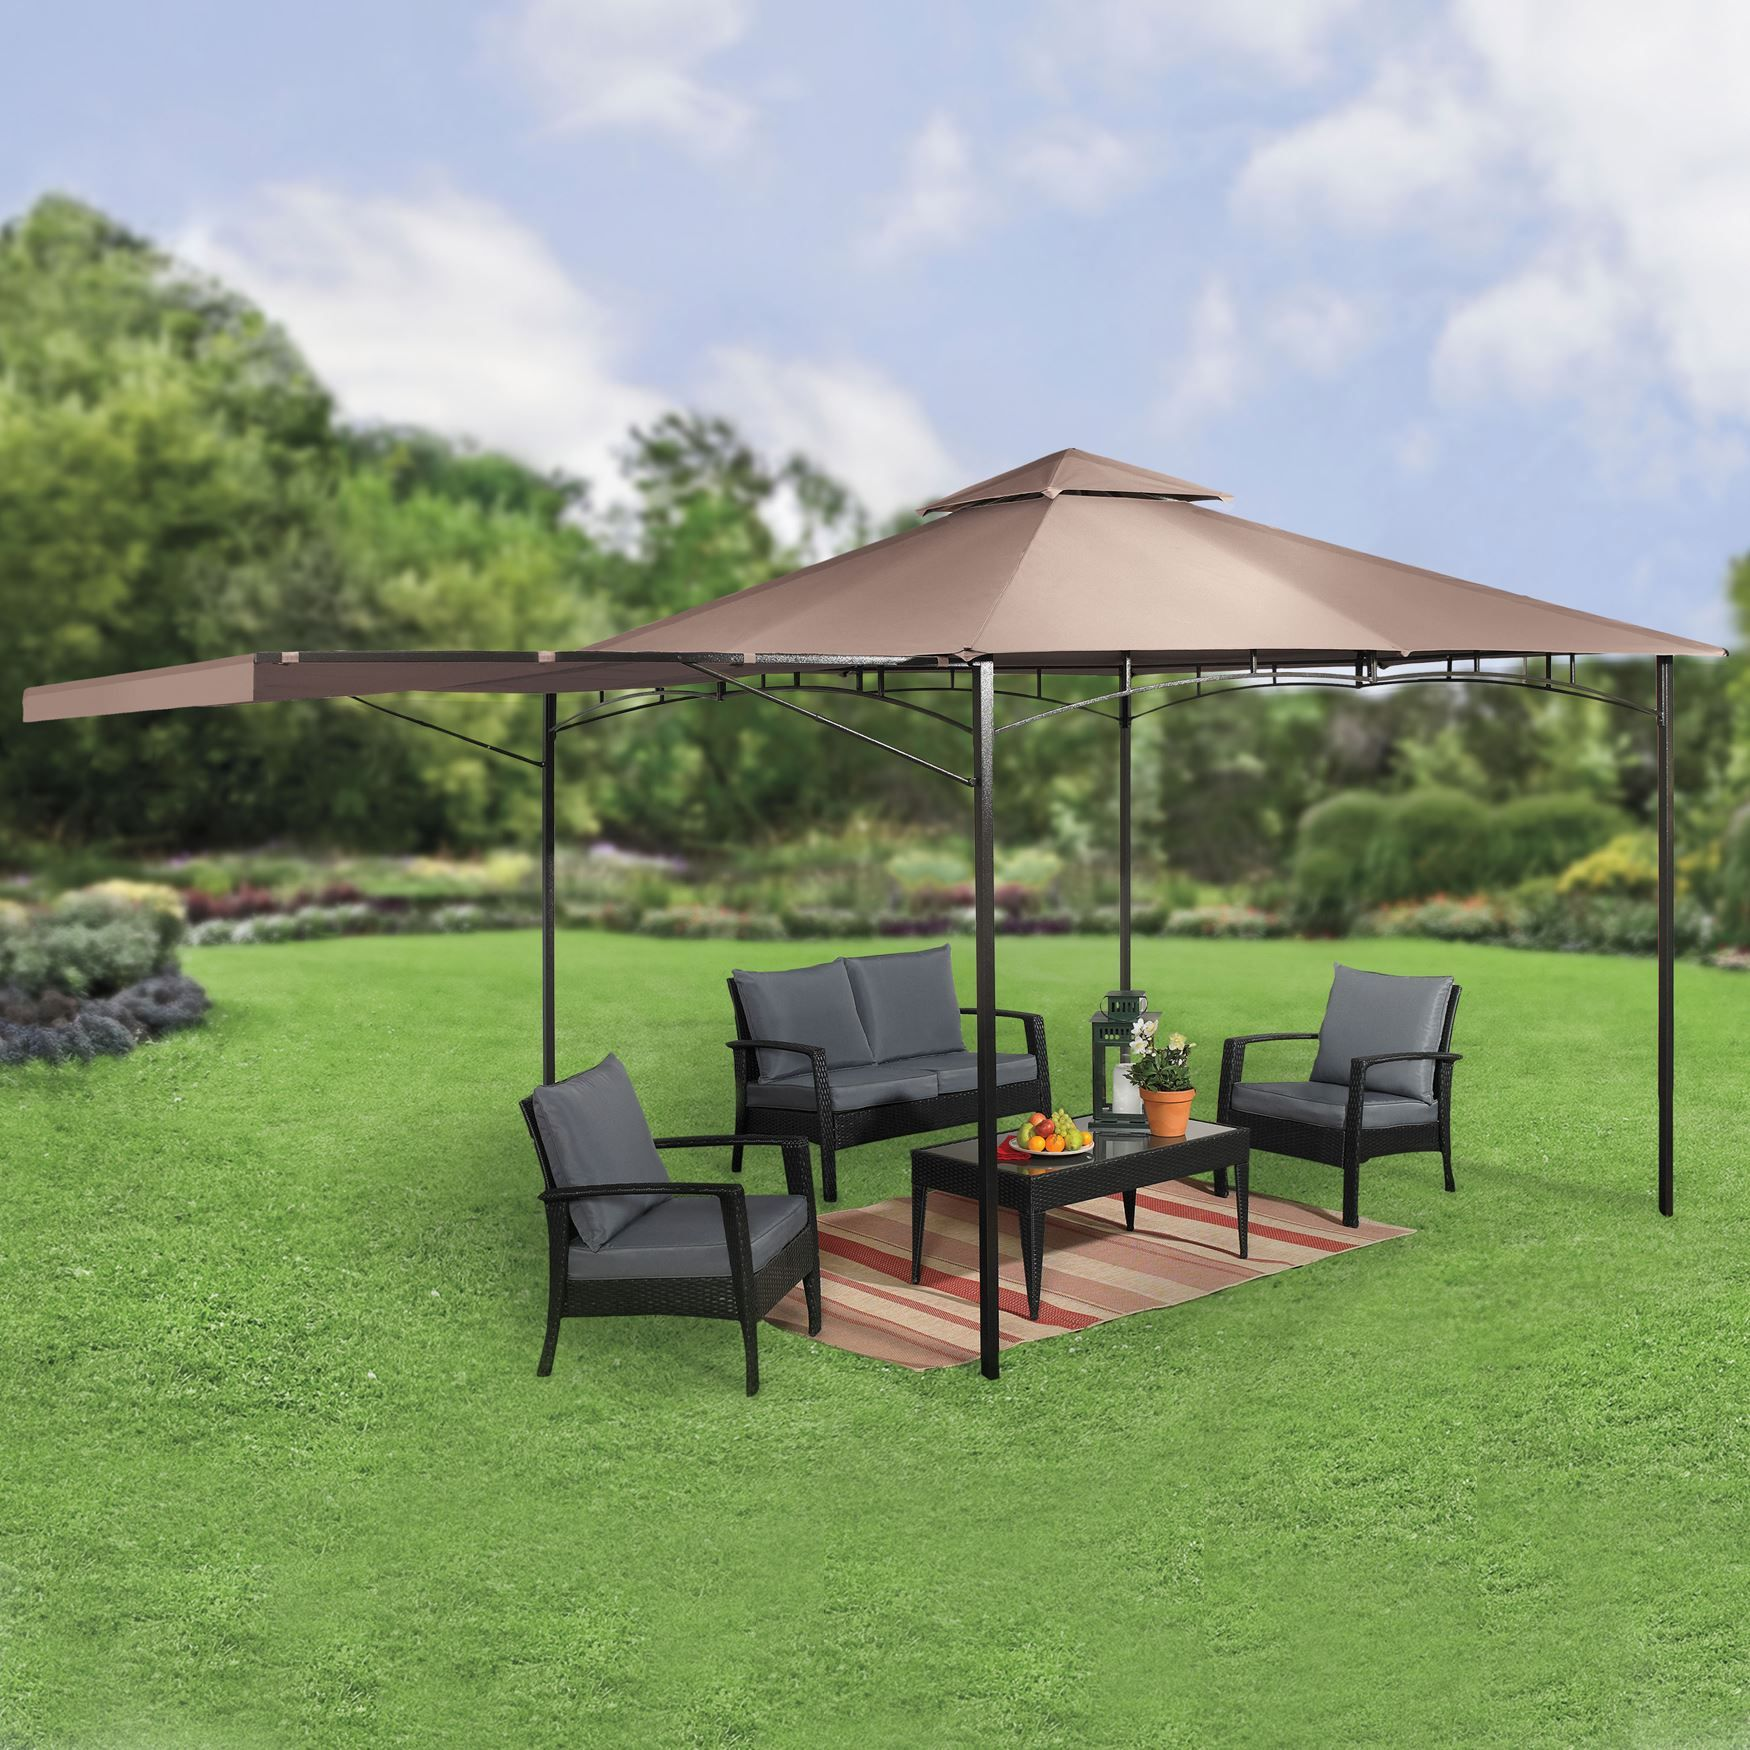 10 x10 Gazebo with Fold Out Extended Canopy